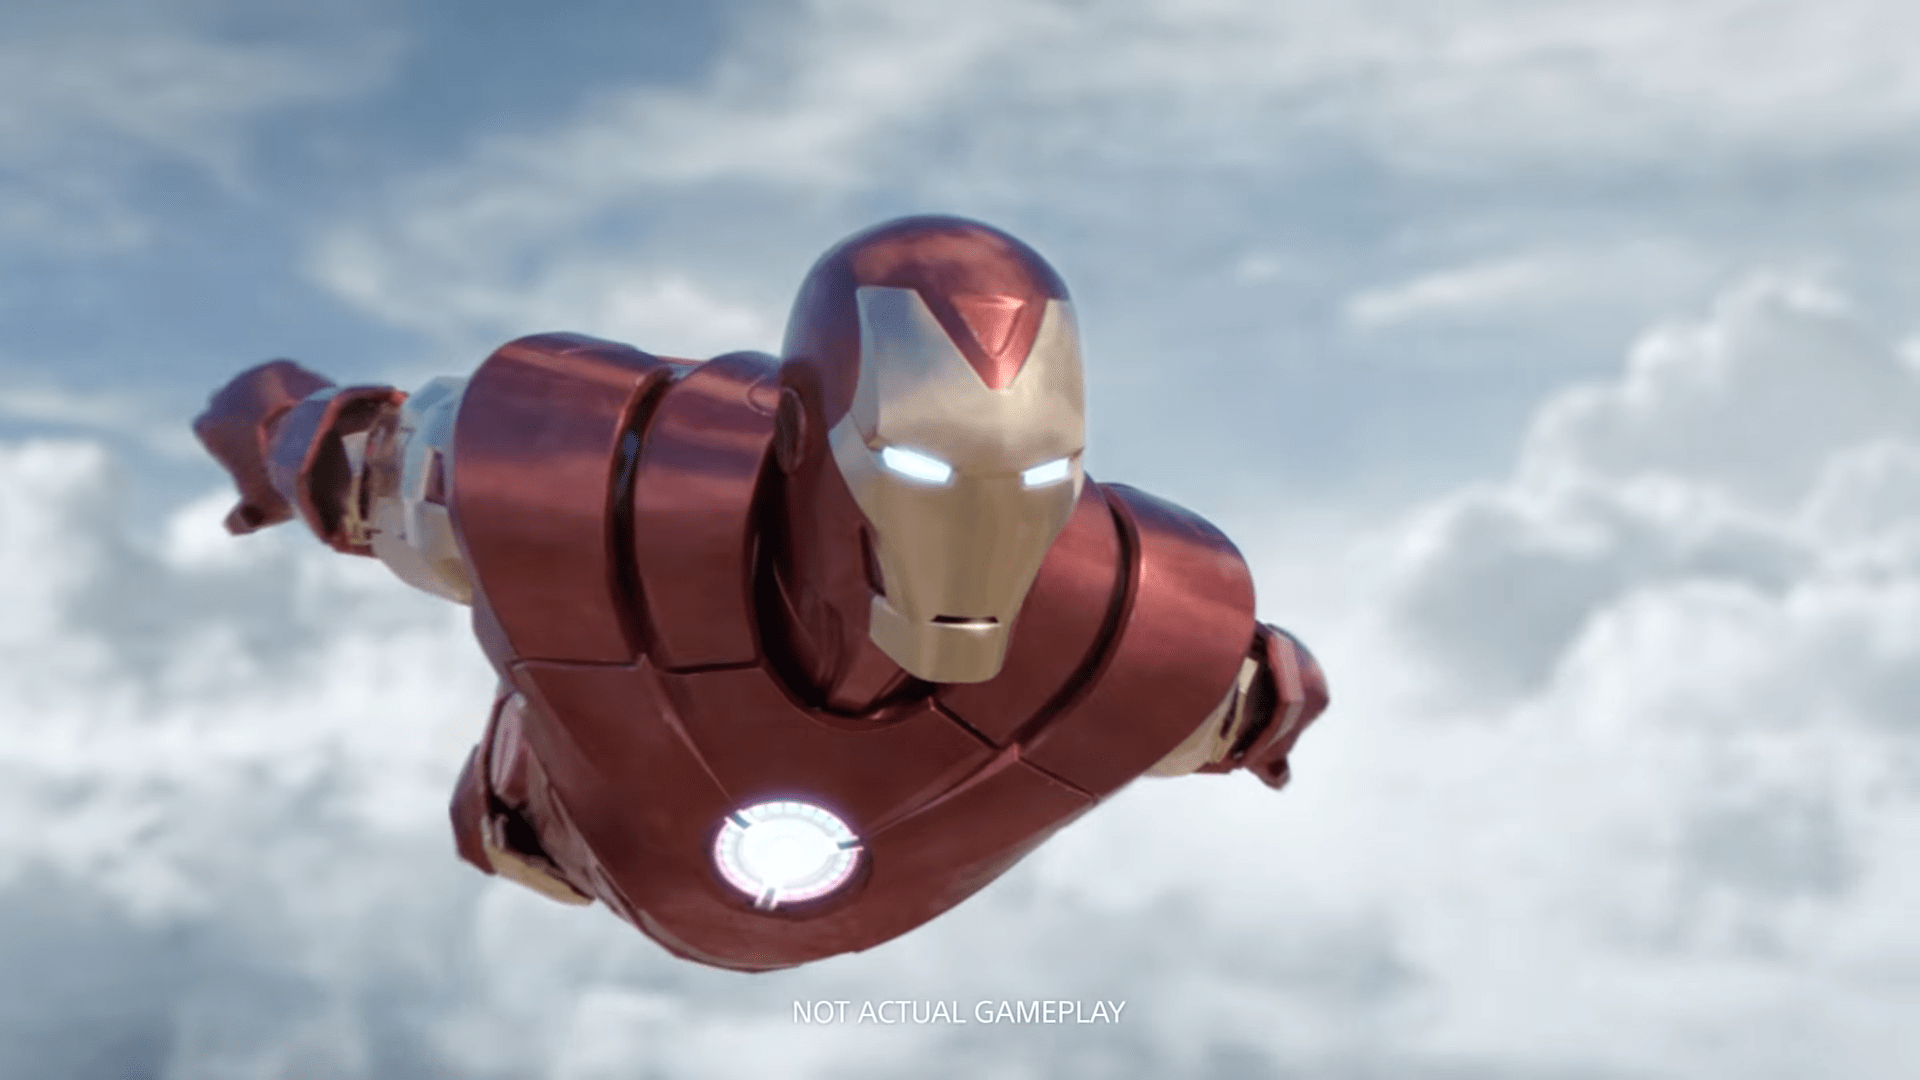 Yet Another Major Game Delay, As Iron Man VR Gets Pushed Back